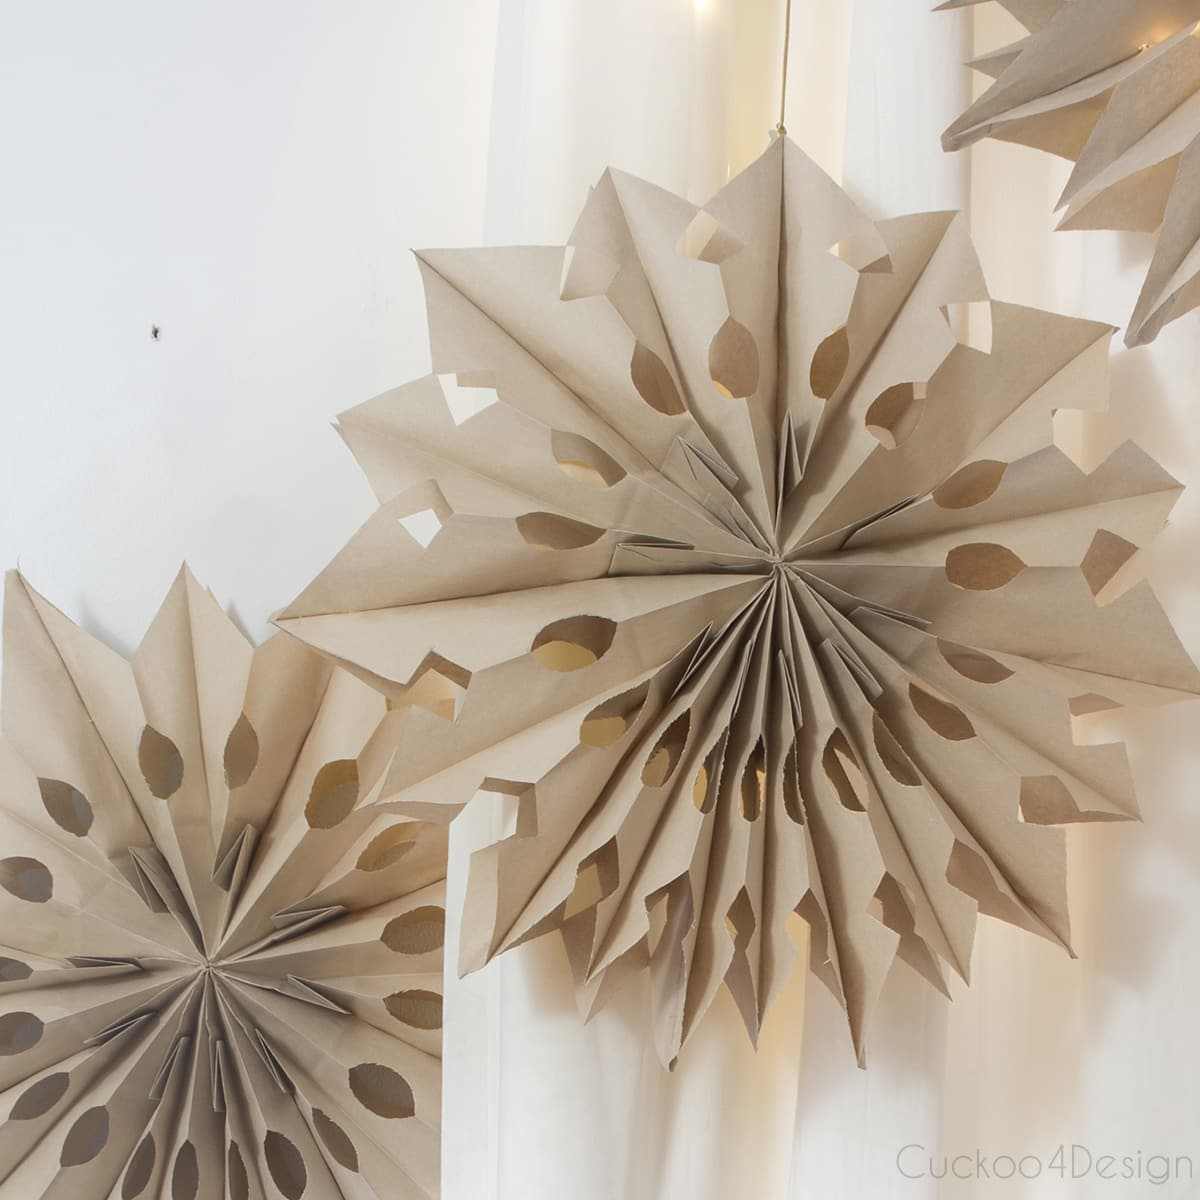 How to make 3D paper snowflakes using lunch bags